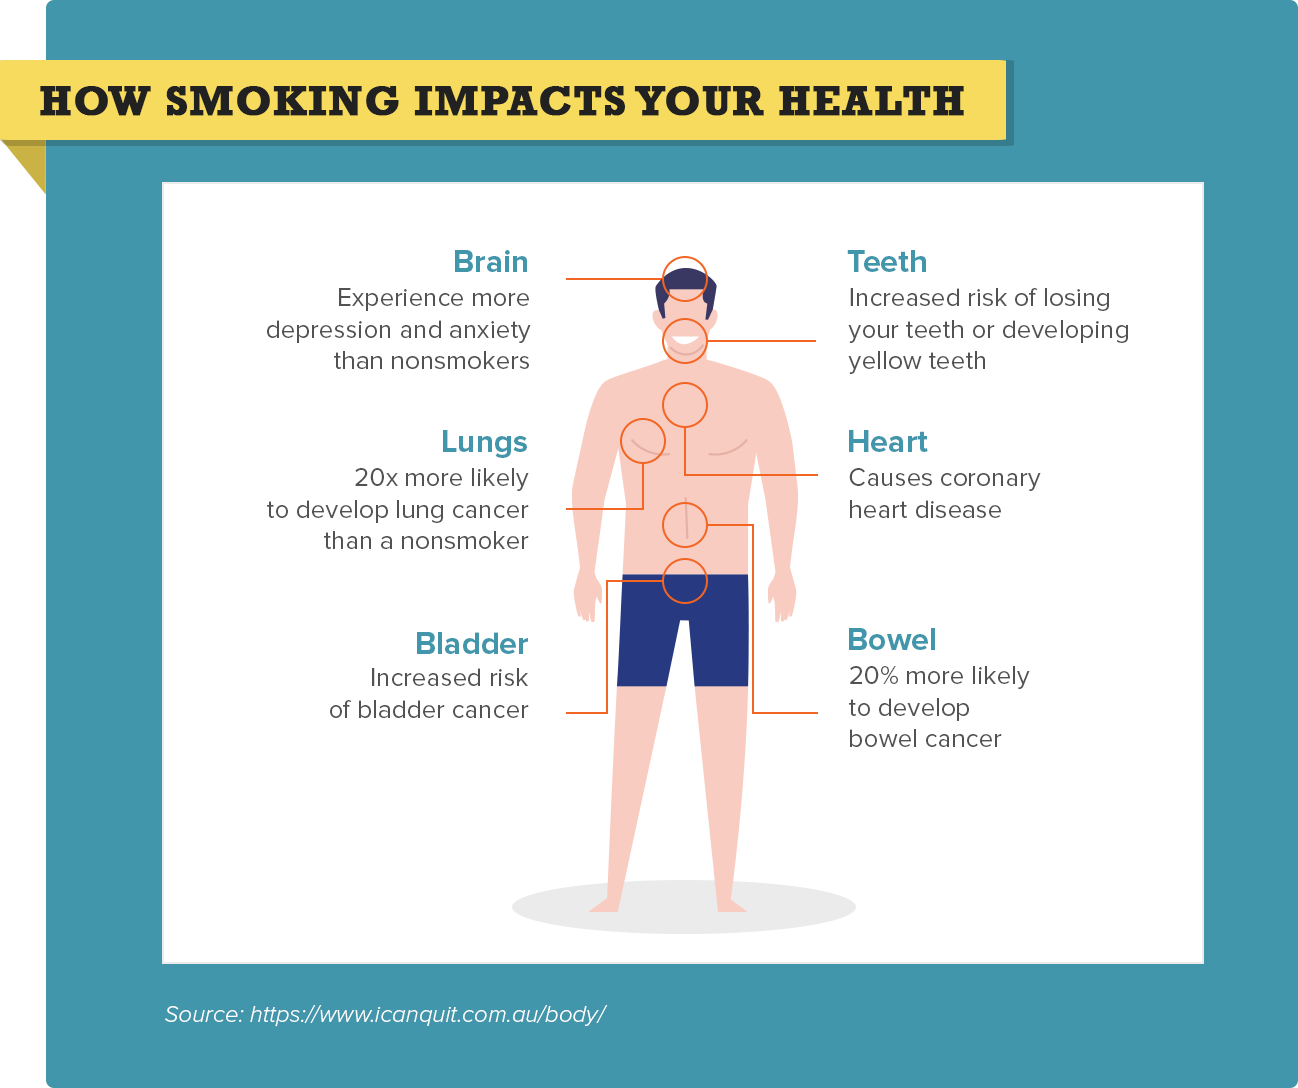 How smoking impacts your health